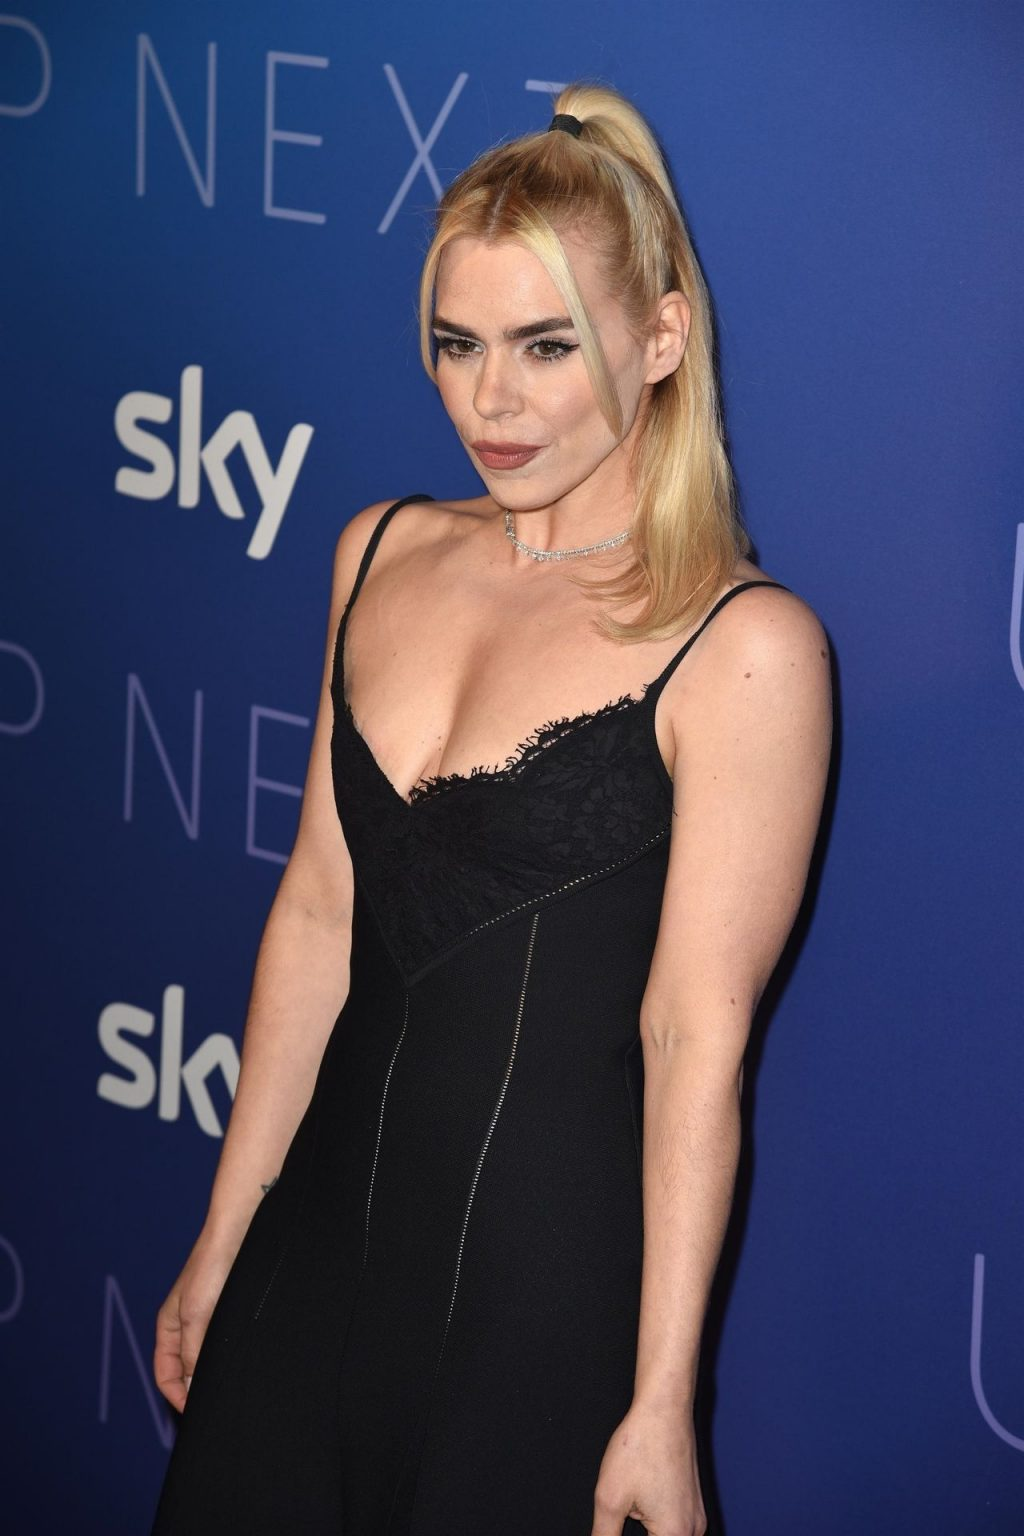 Billie Piper Sexy The Fappening Blog 8 1024x1536 - Billie Piper Smiles at the Sky Up Next Event (67 Photos)